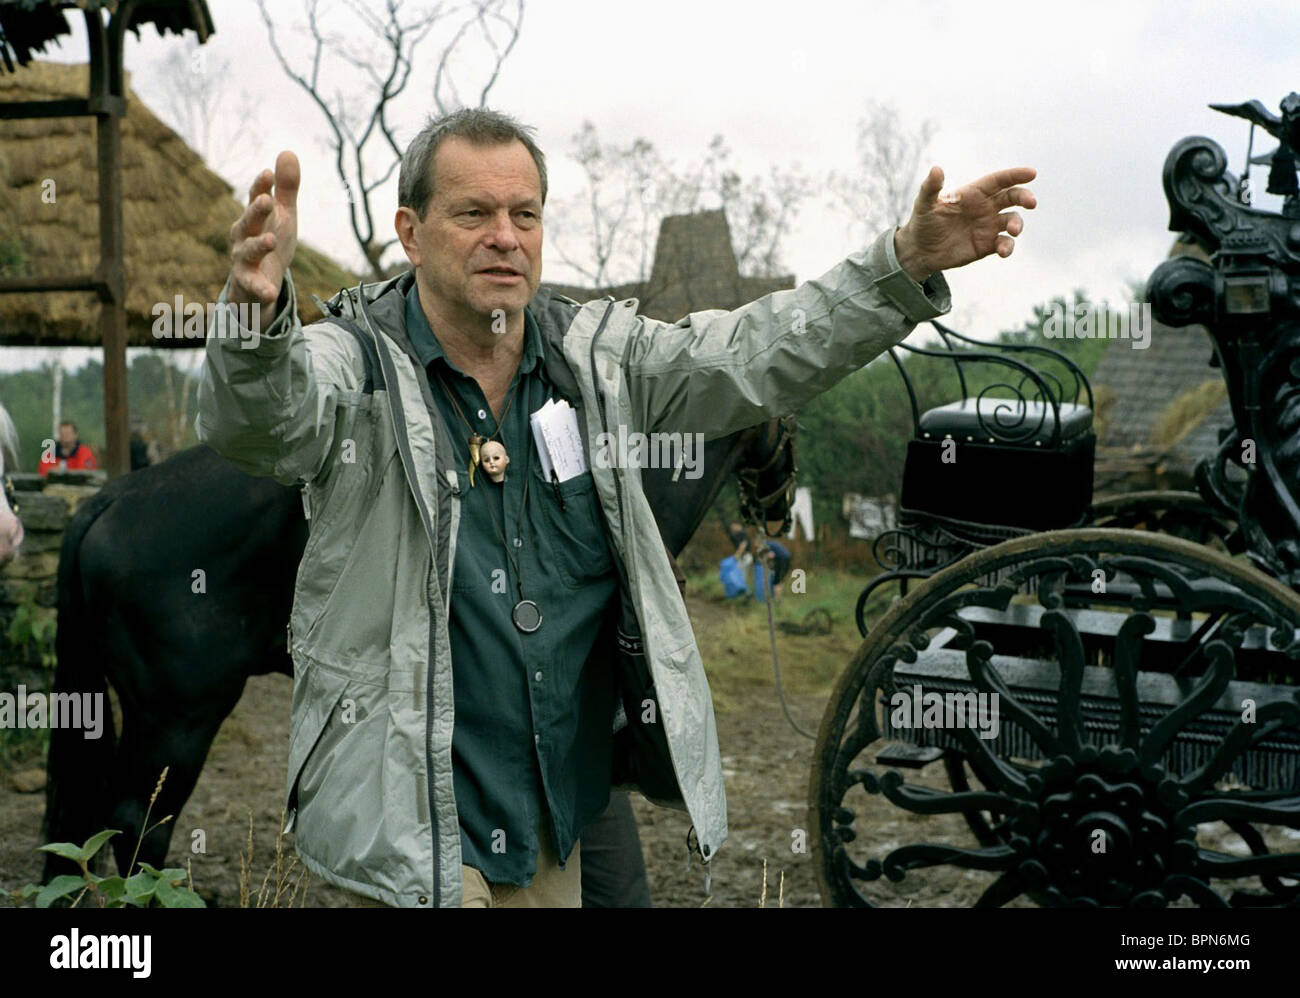 TERRY GILLIAM THE BROTHERS GRIMM (2005) - Stock Image